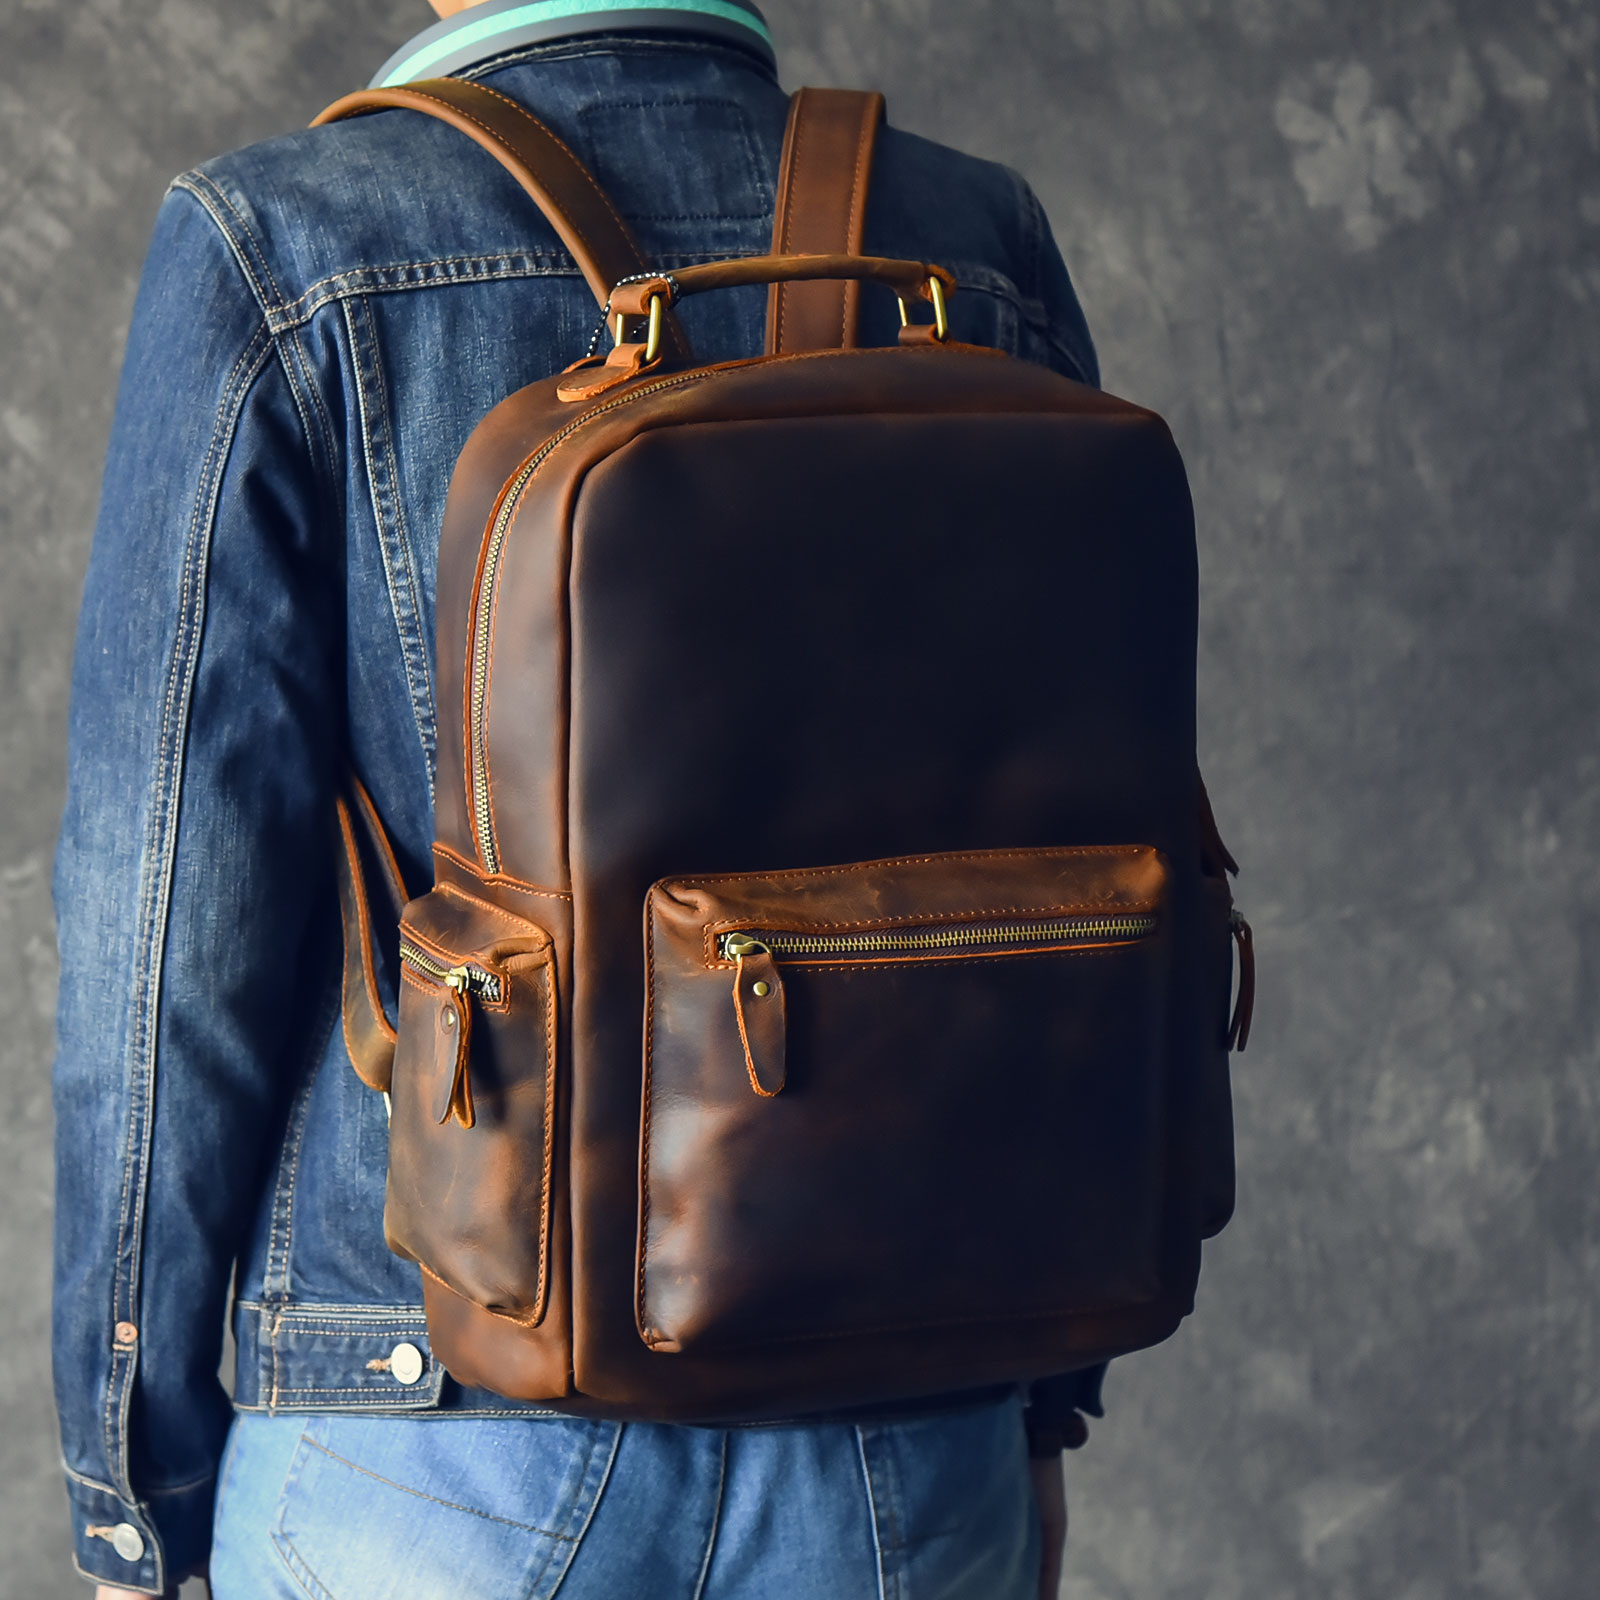 Brand Design Men Genuine Leather Backpack Crazy Horse Vintage Daypack Pocket Casual Rucksack Vintage Handmade ToteBrand Design Men Genuine Leather Backpack Crazy Horse Vintage Daypack Pocket Casual Rucksack Vintage Handmade Tote